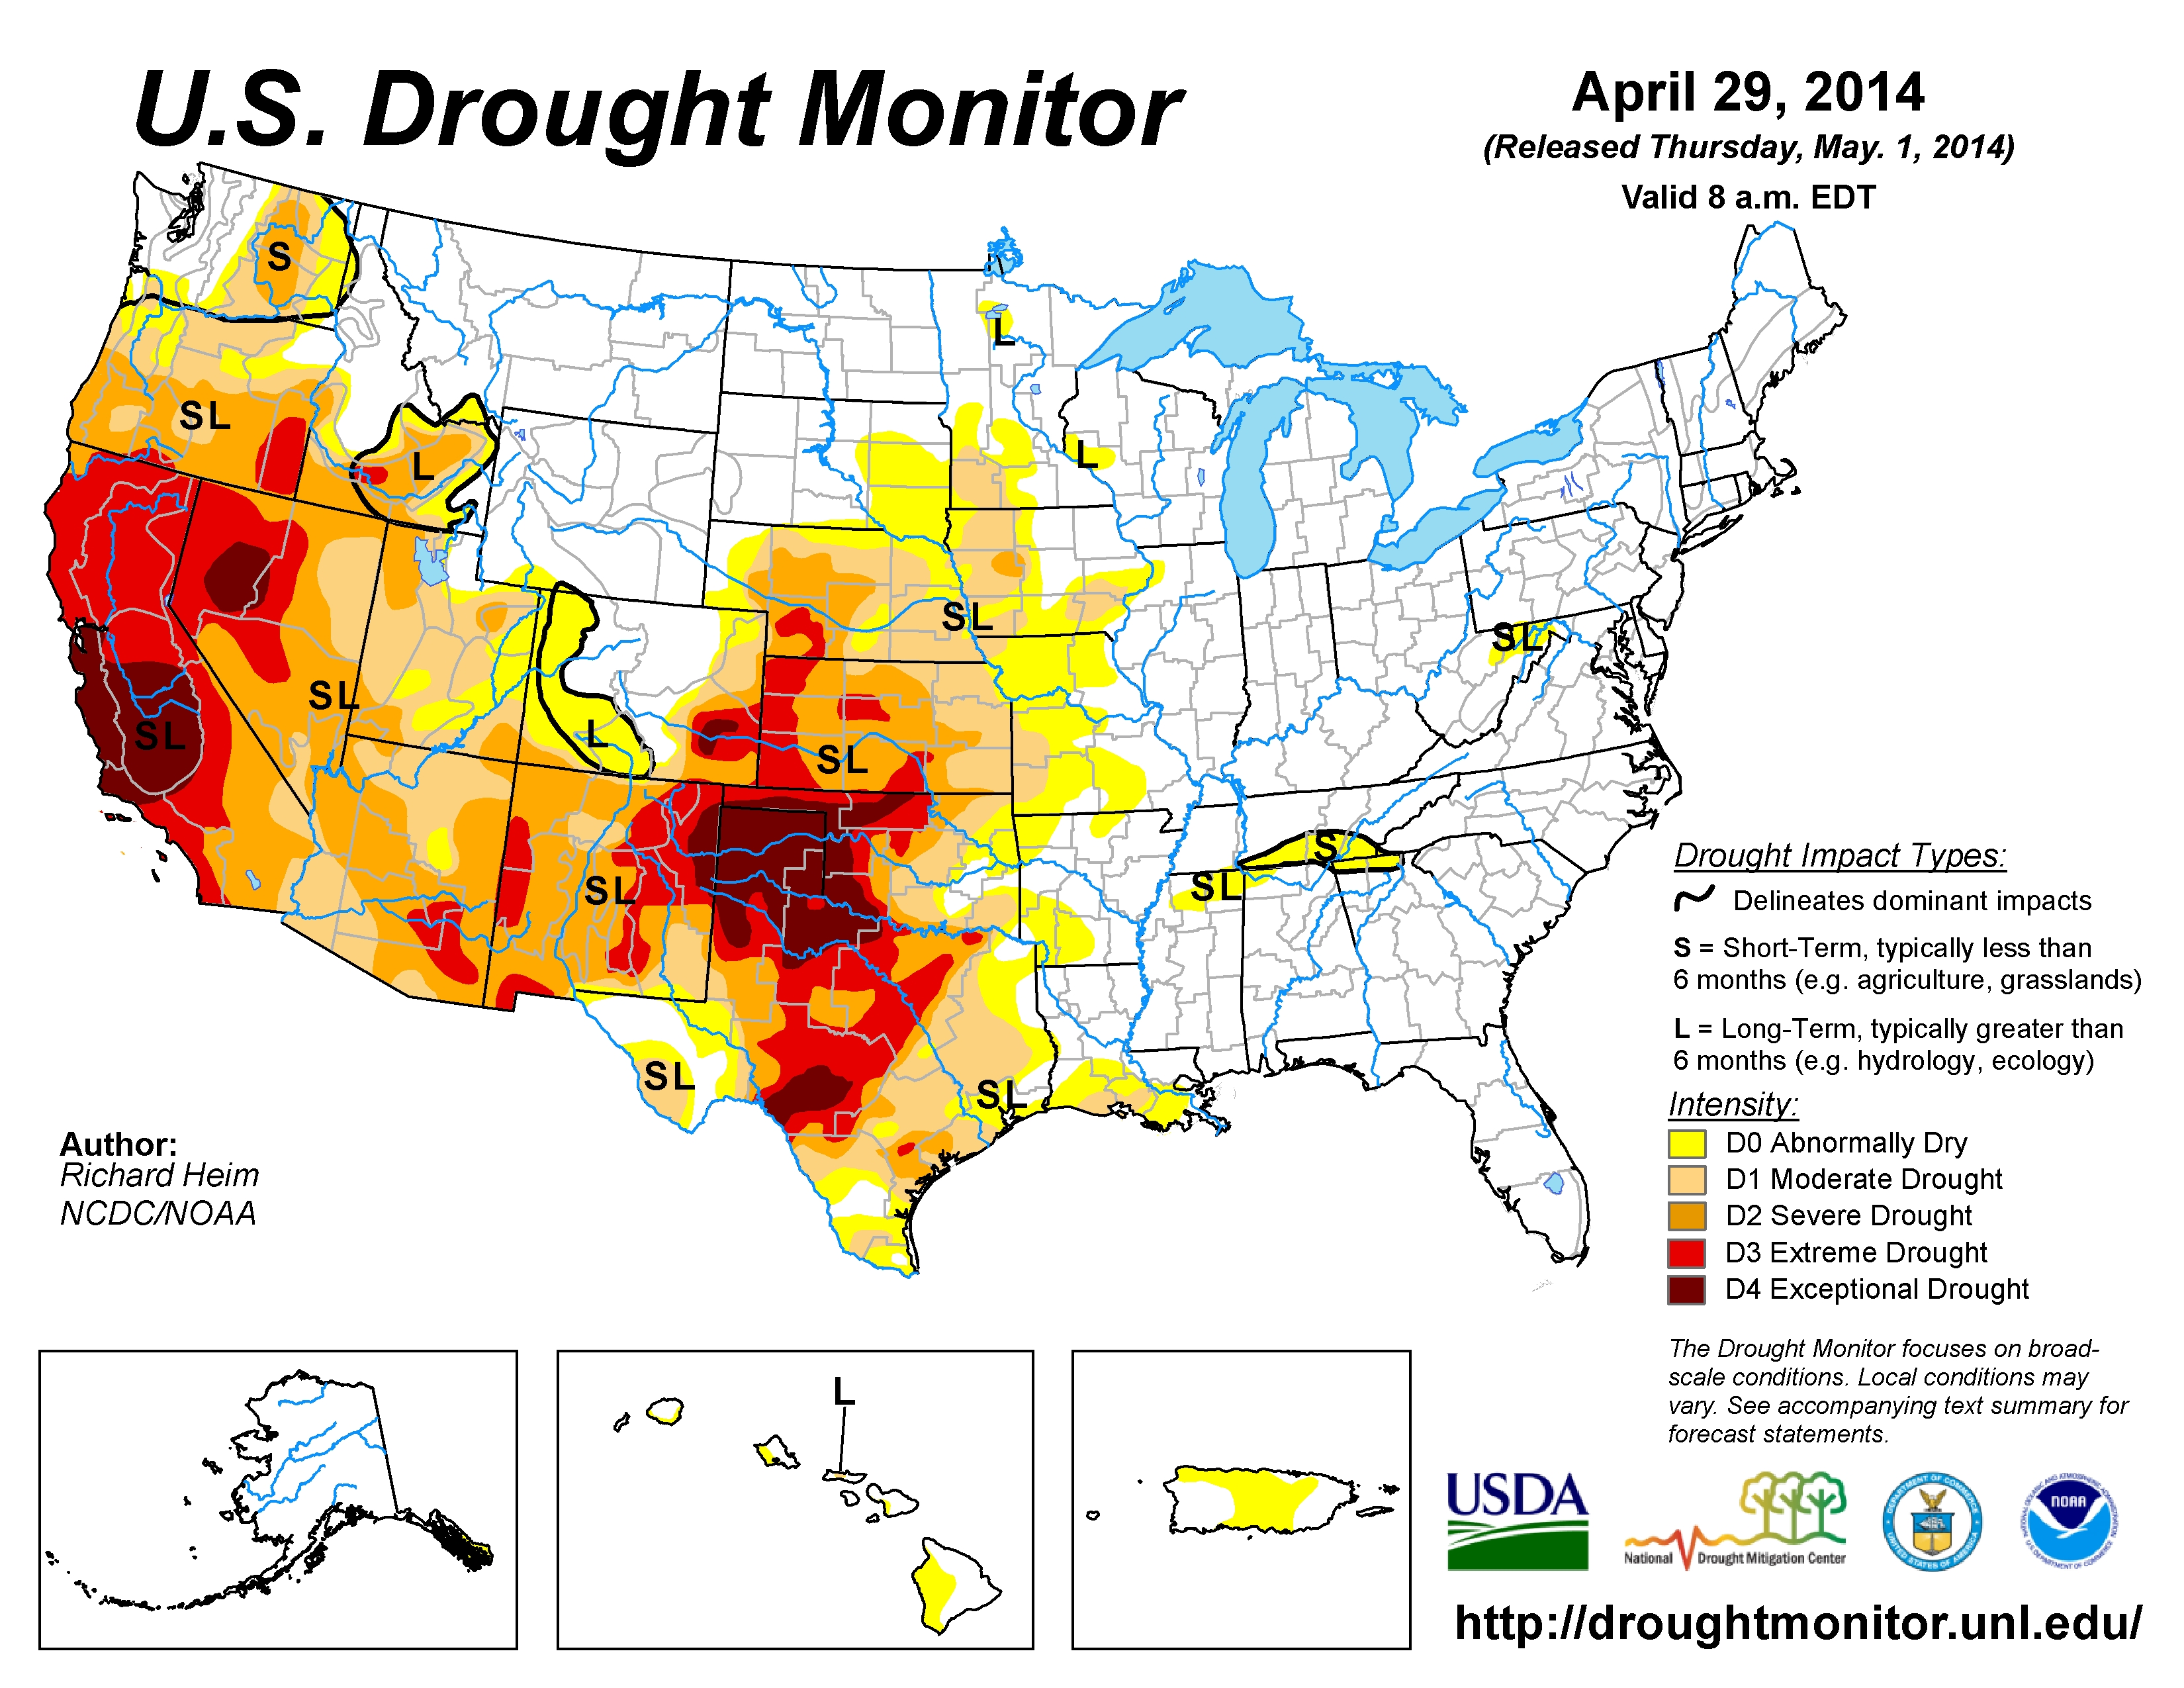 The U.S. Drought Monitor drought map valid April 29, 2014